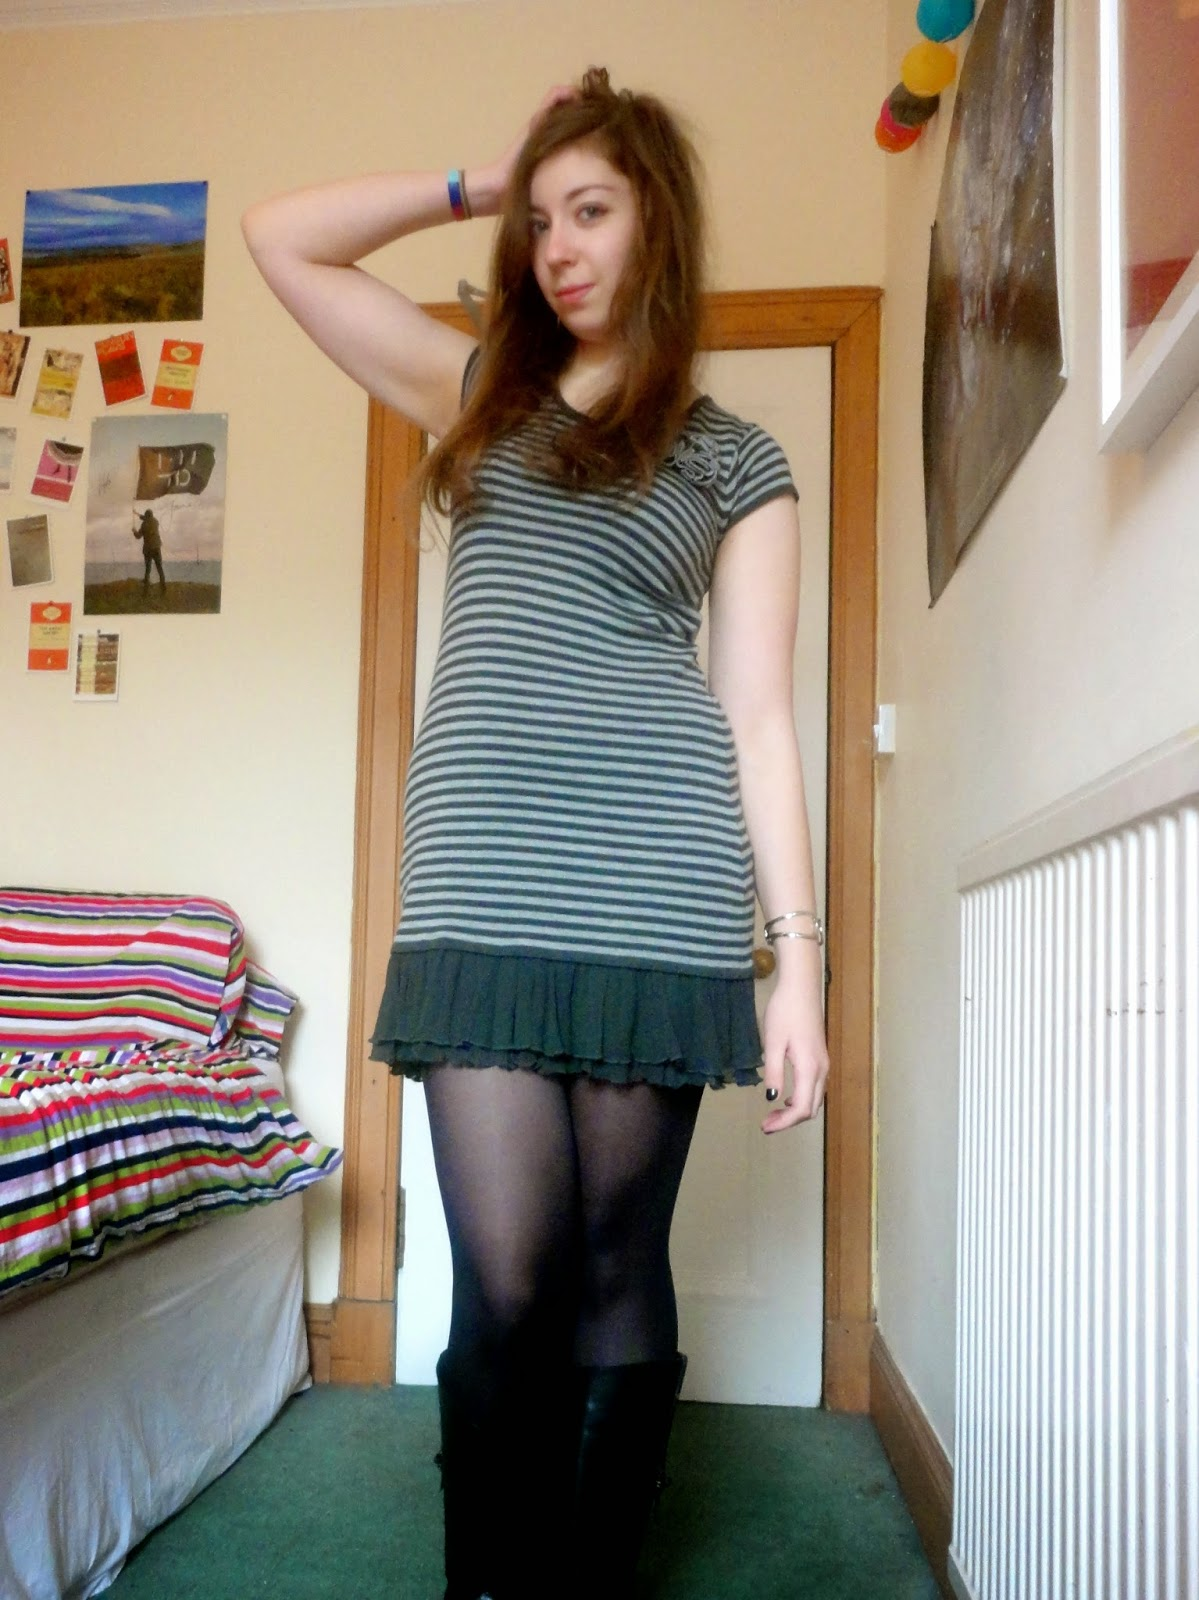 Outfit of black and grey striped dress, with black tights and leather boots